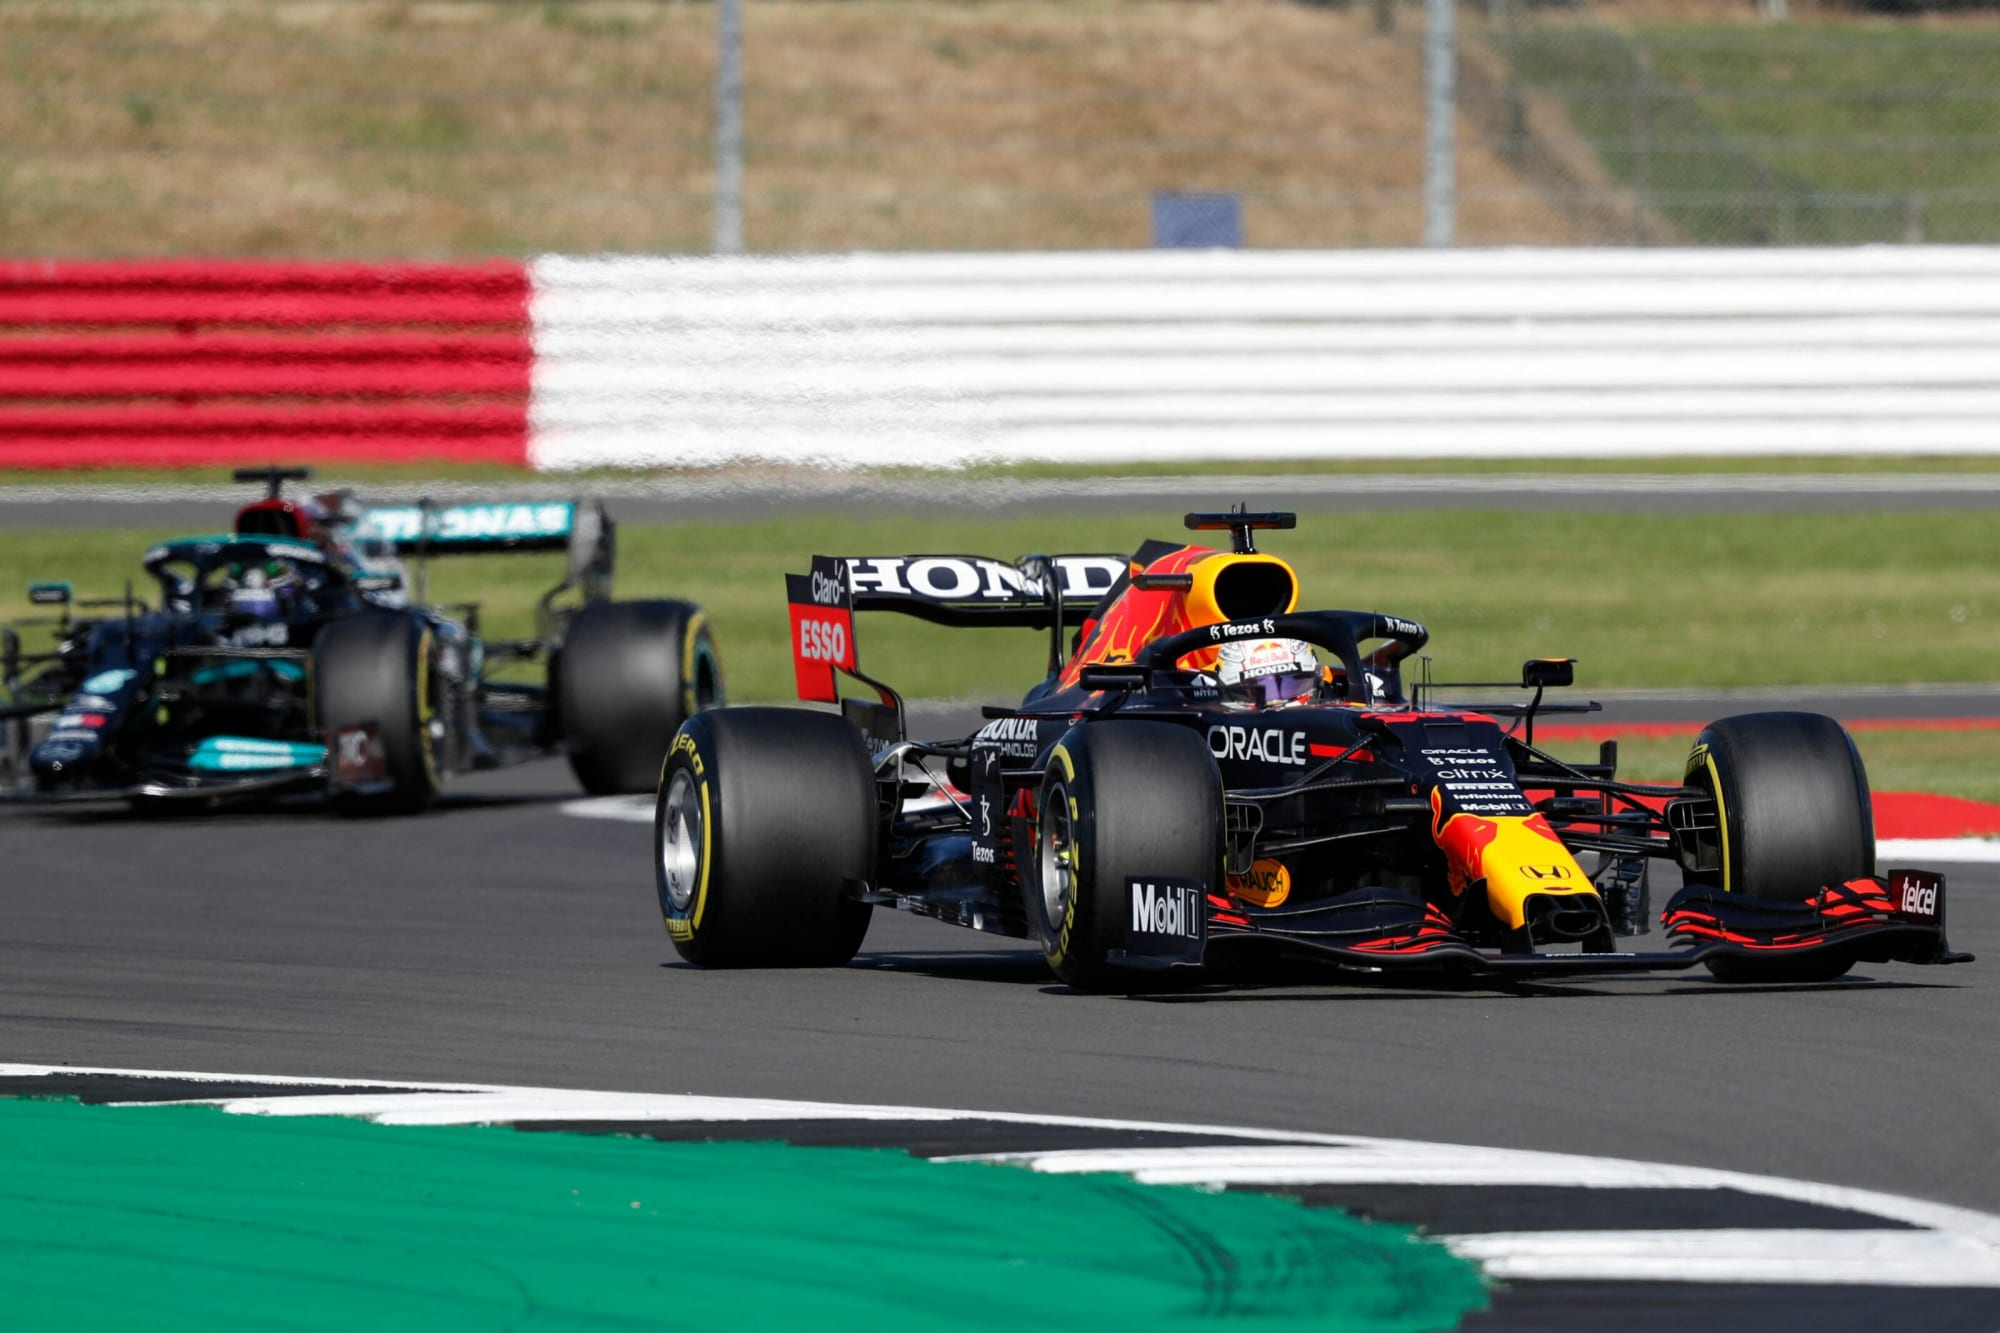 Is Formula 1 riding down a slippery slope?